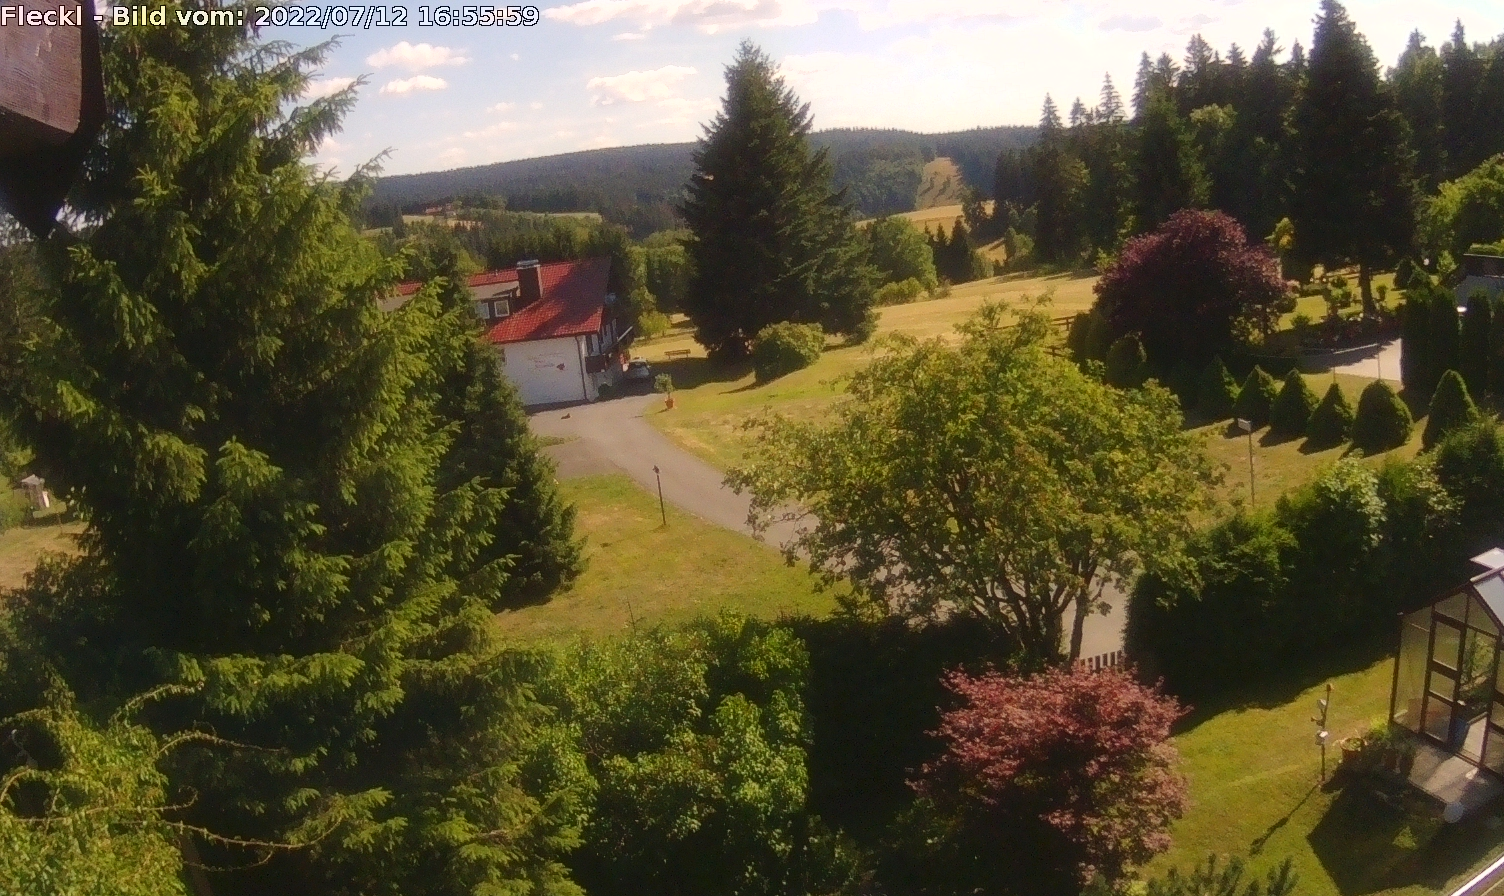 Webcam in Fleckl